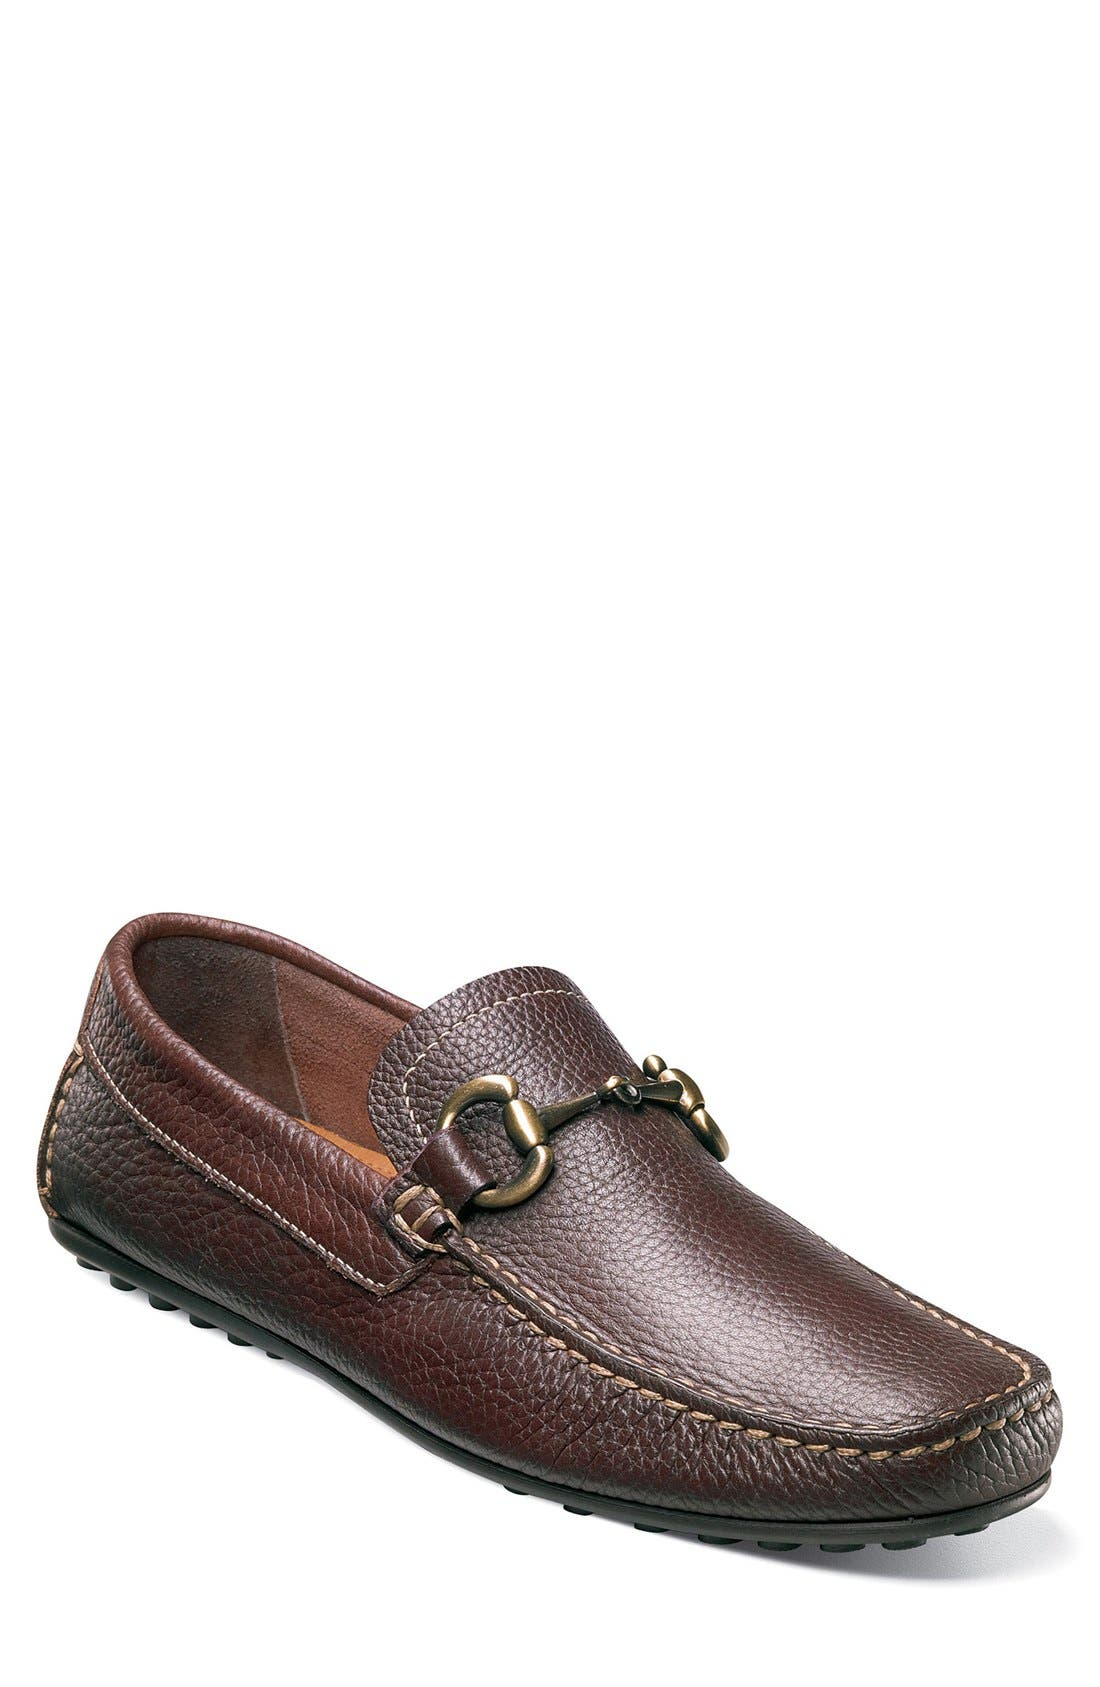 'Danforth' Driving Shoe,                         Main,                         color, BROWN LEATHER